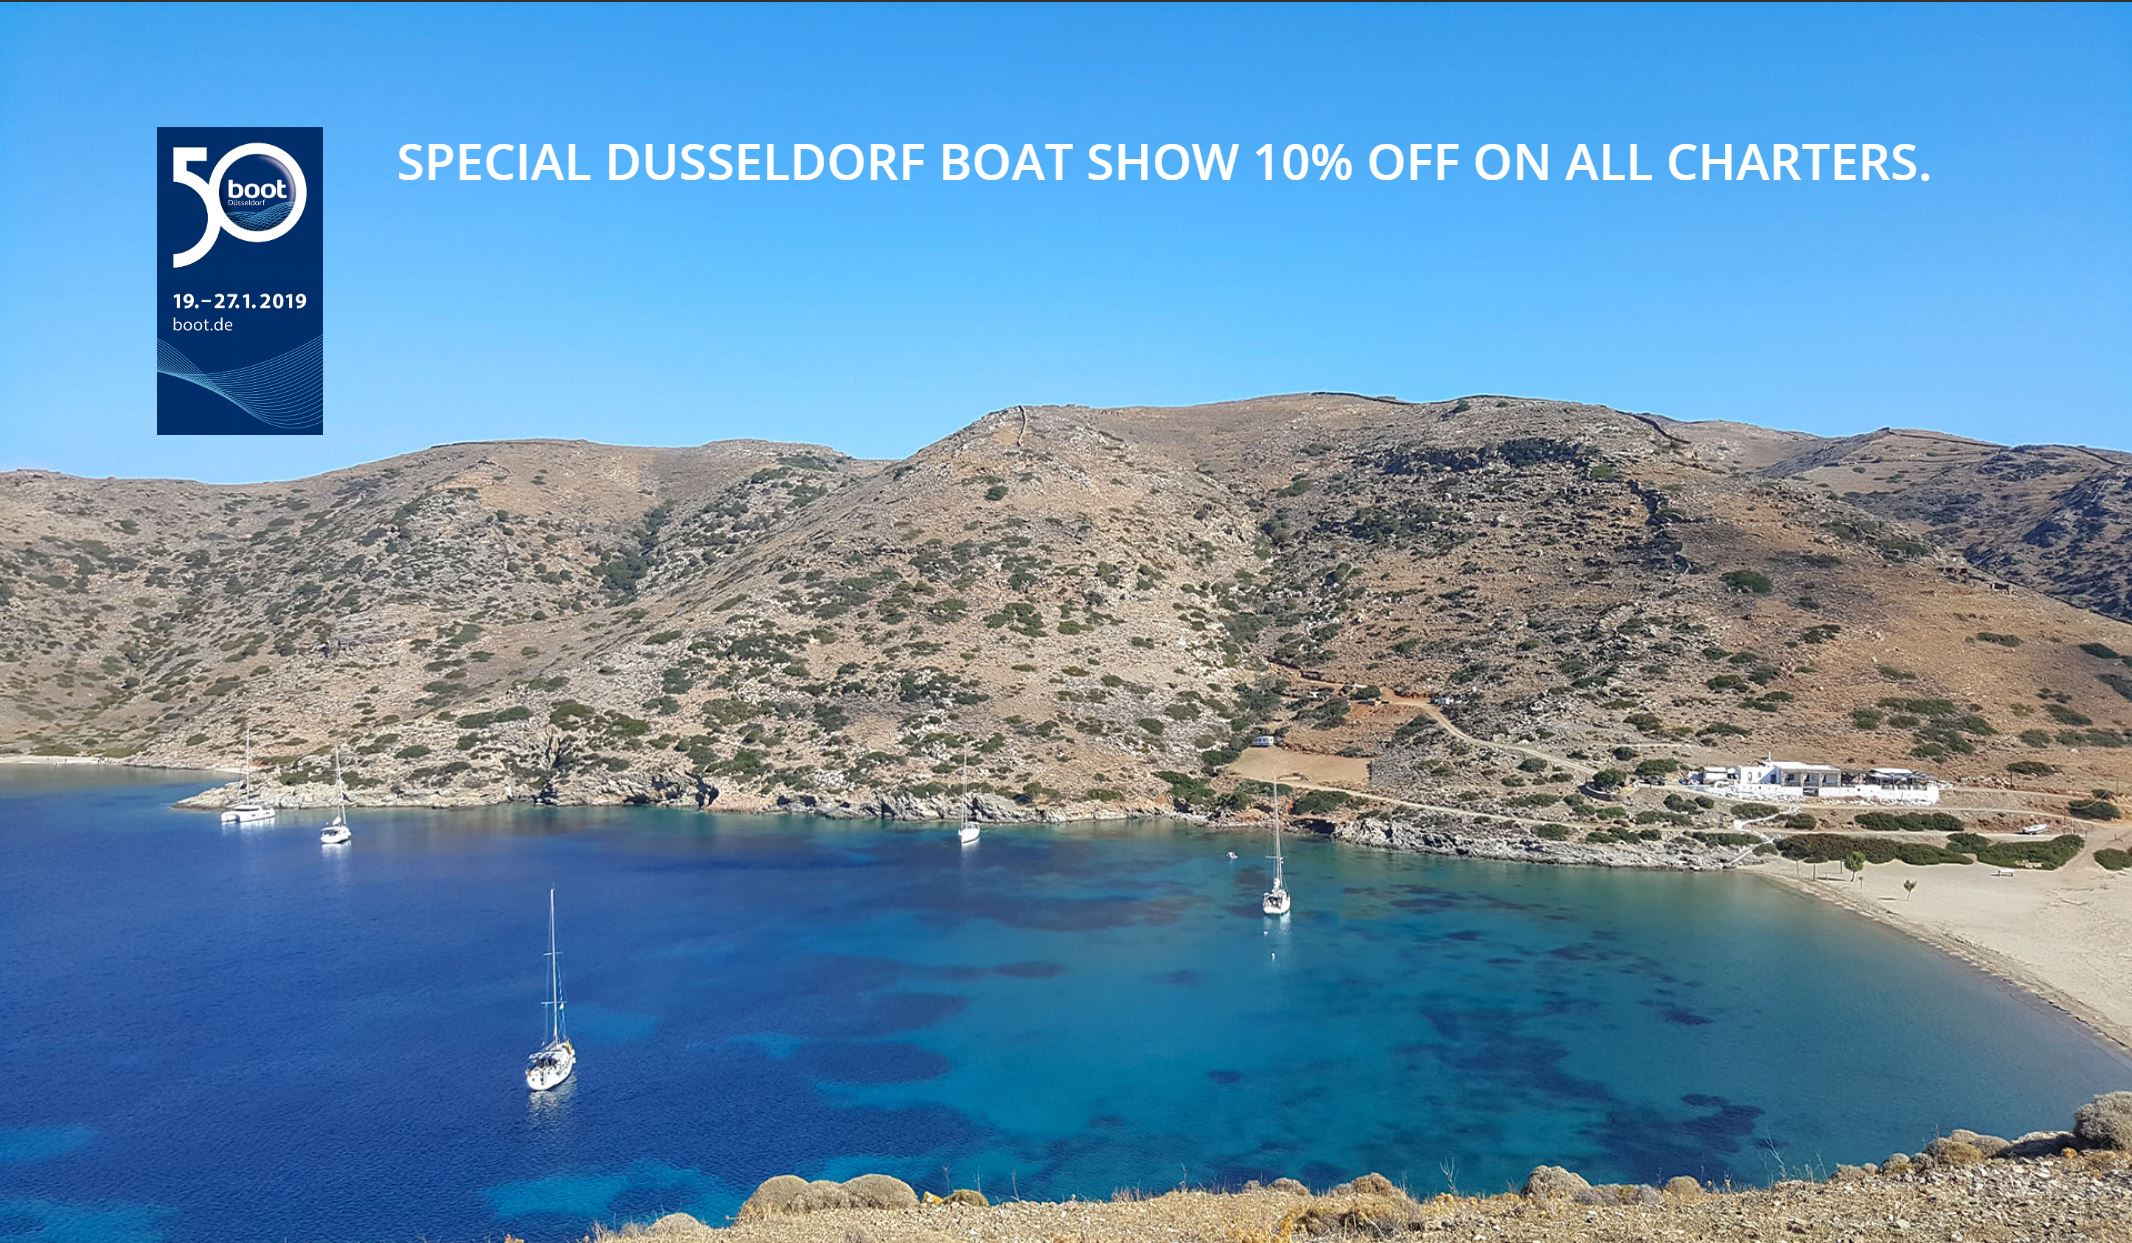 Special Dusseldorf boat show 10% off on all charters